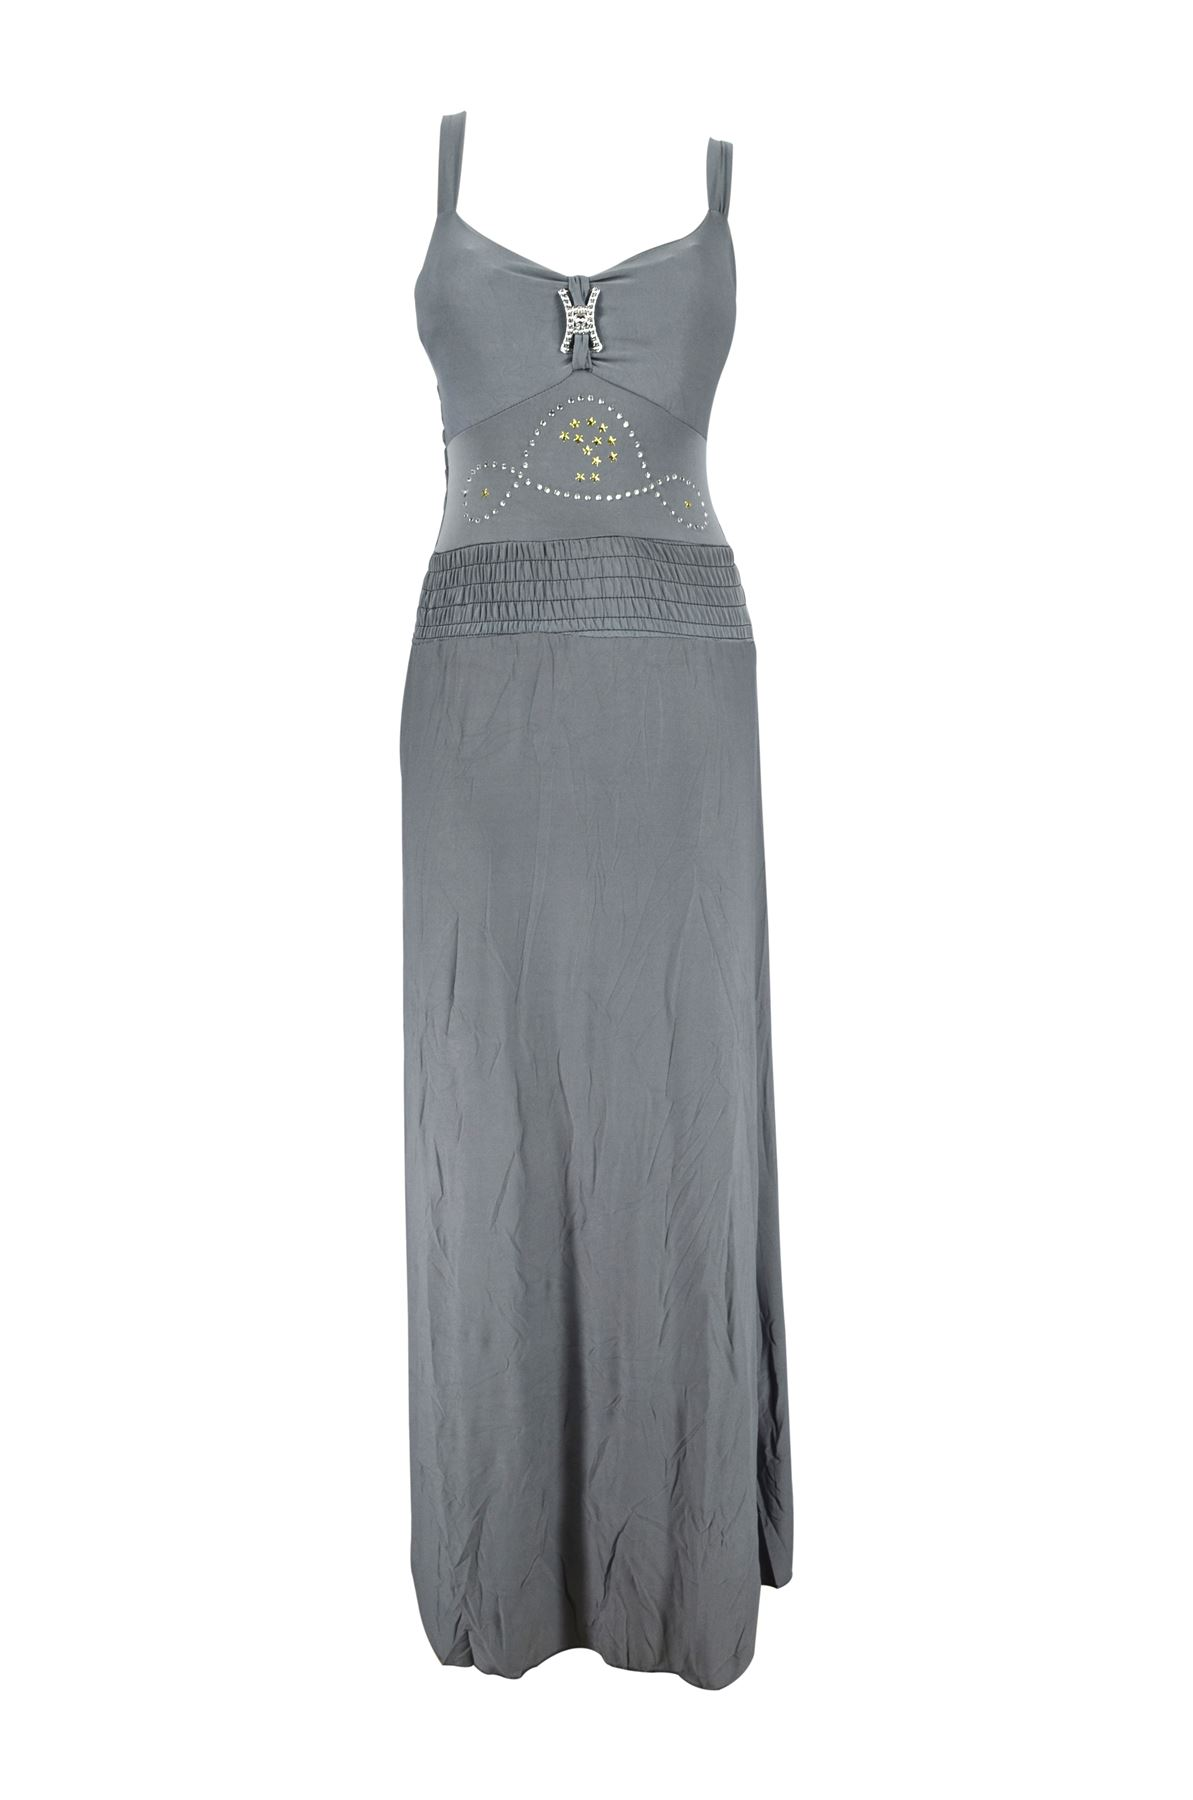 Belle Donne -Womens Maxi Dress Summer Dress Top Halterneck Fashion Long Dress - Gray